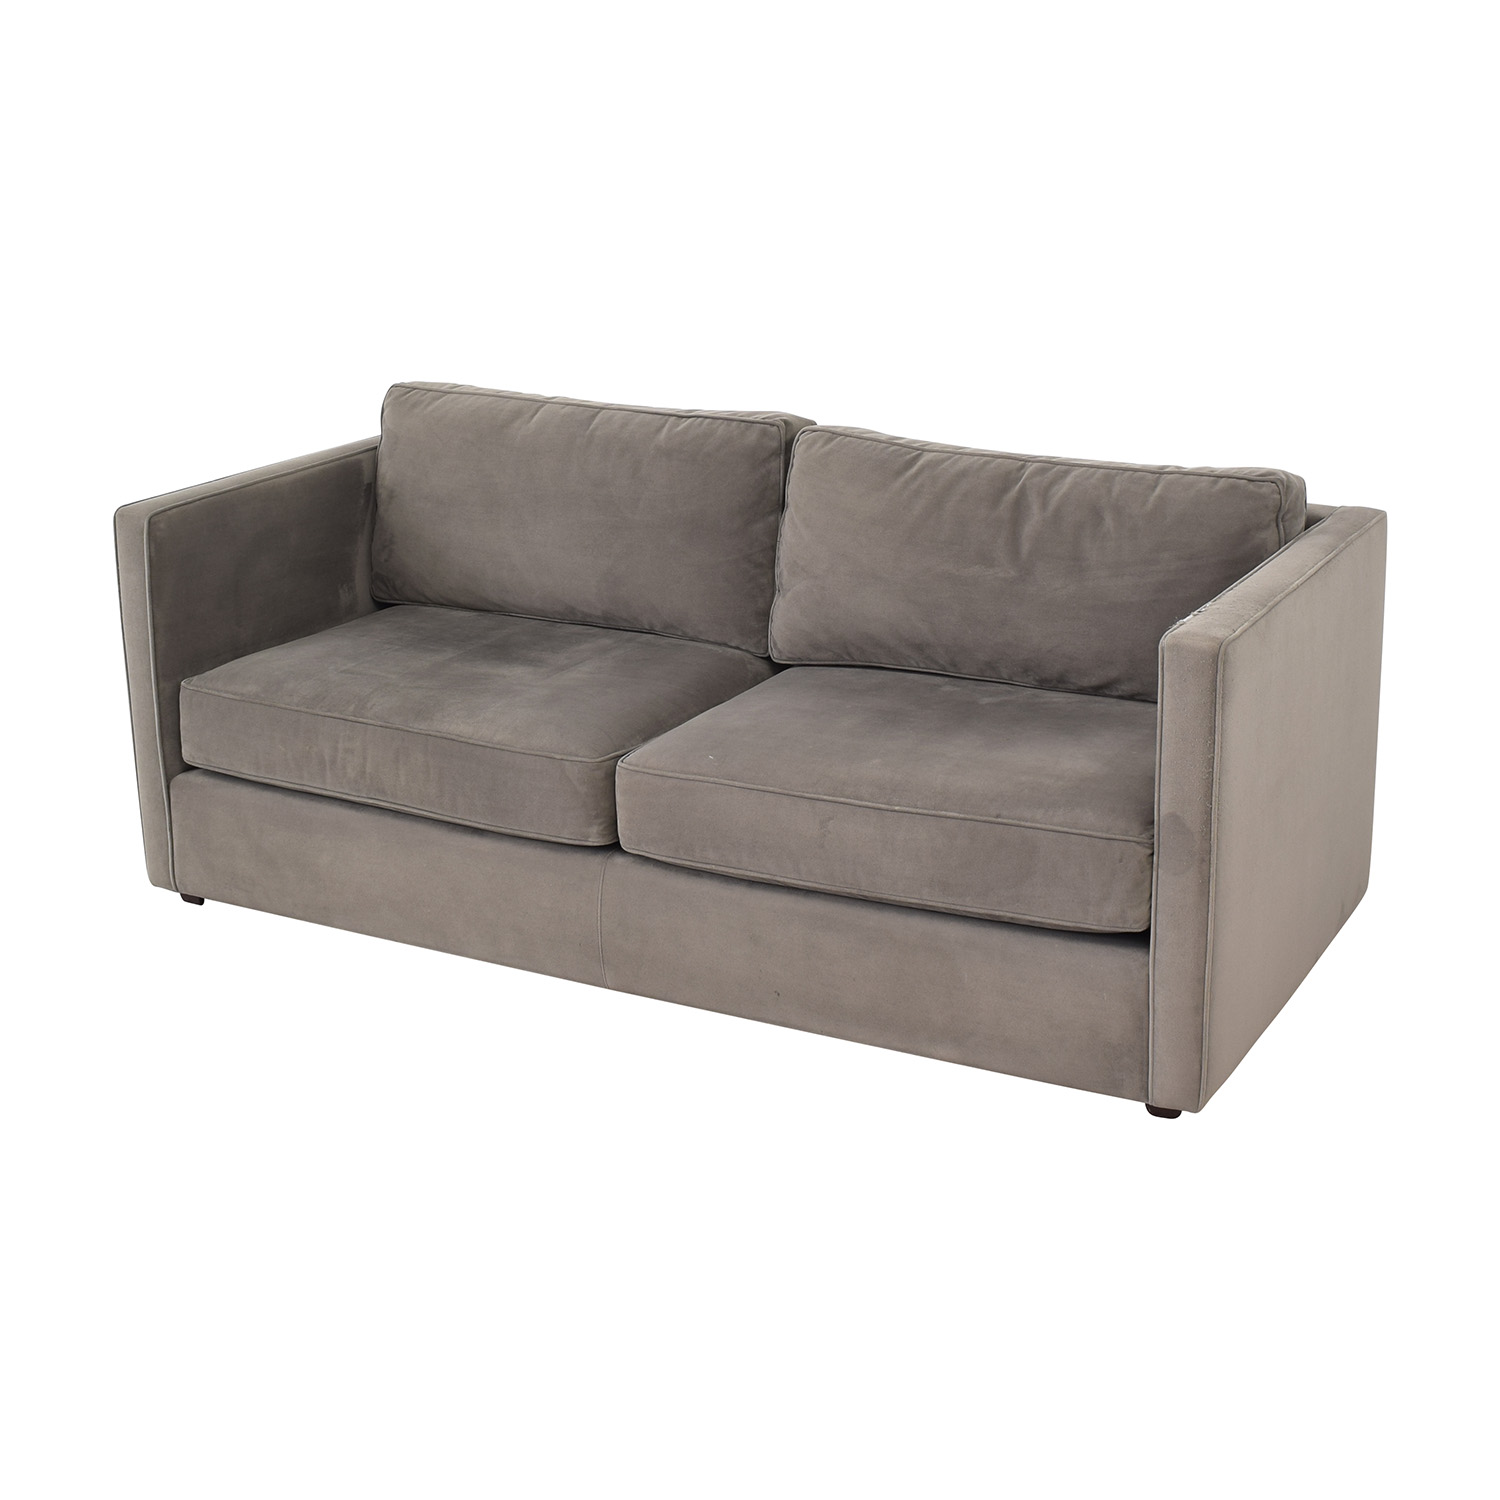 Room & Board Room & Board Watson Two Cushion Sofa nj